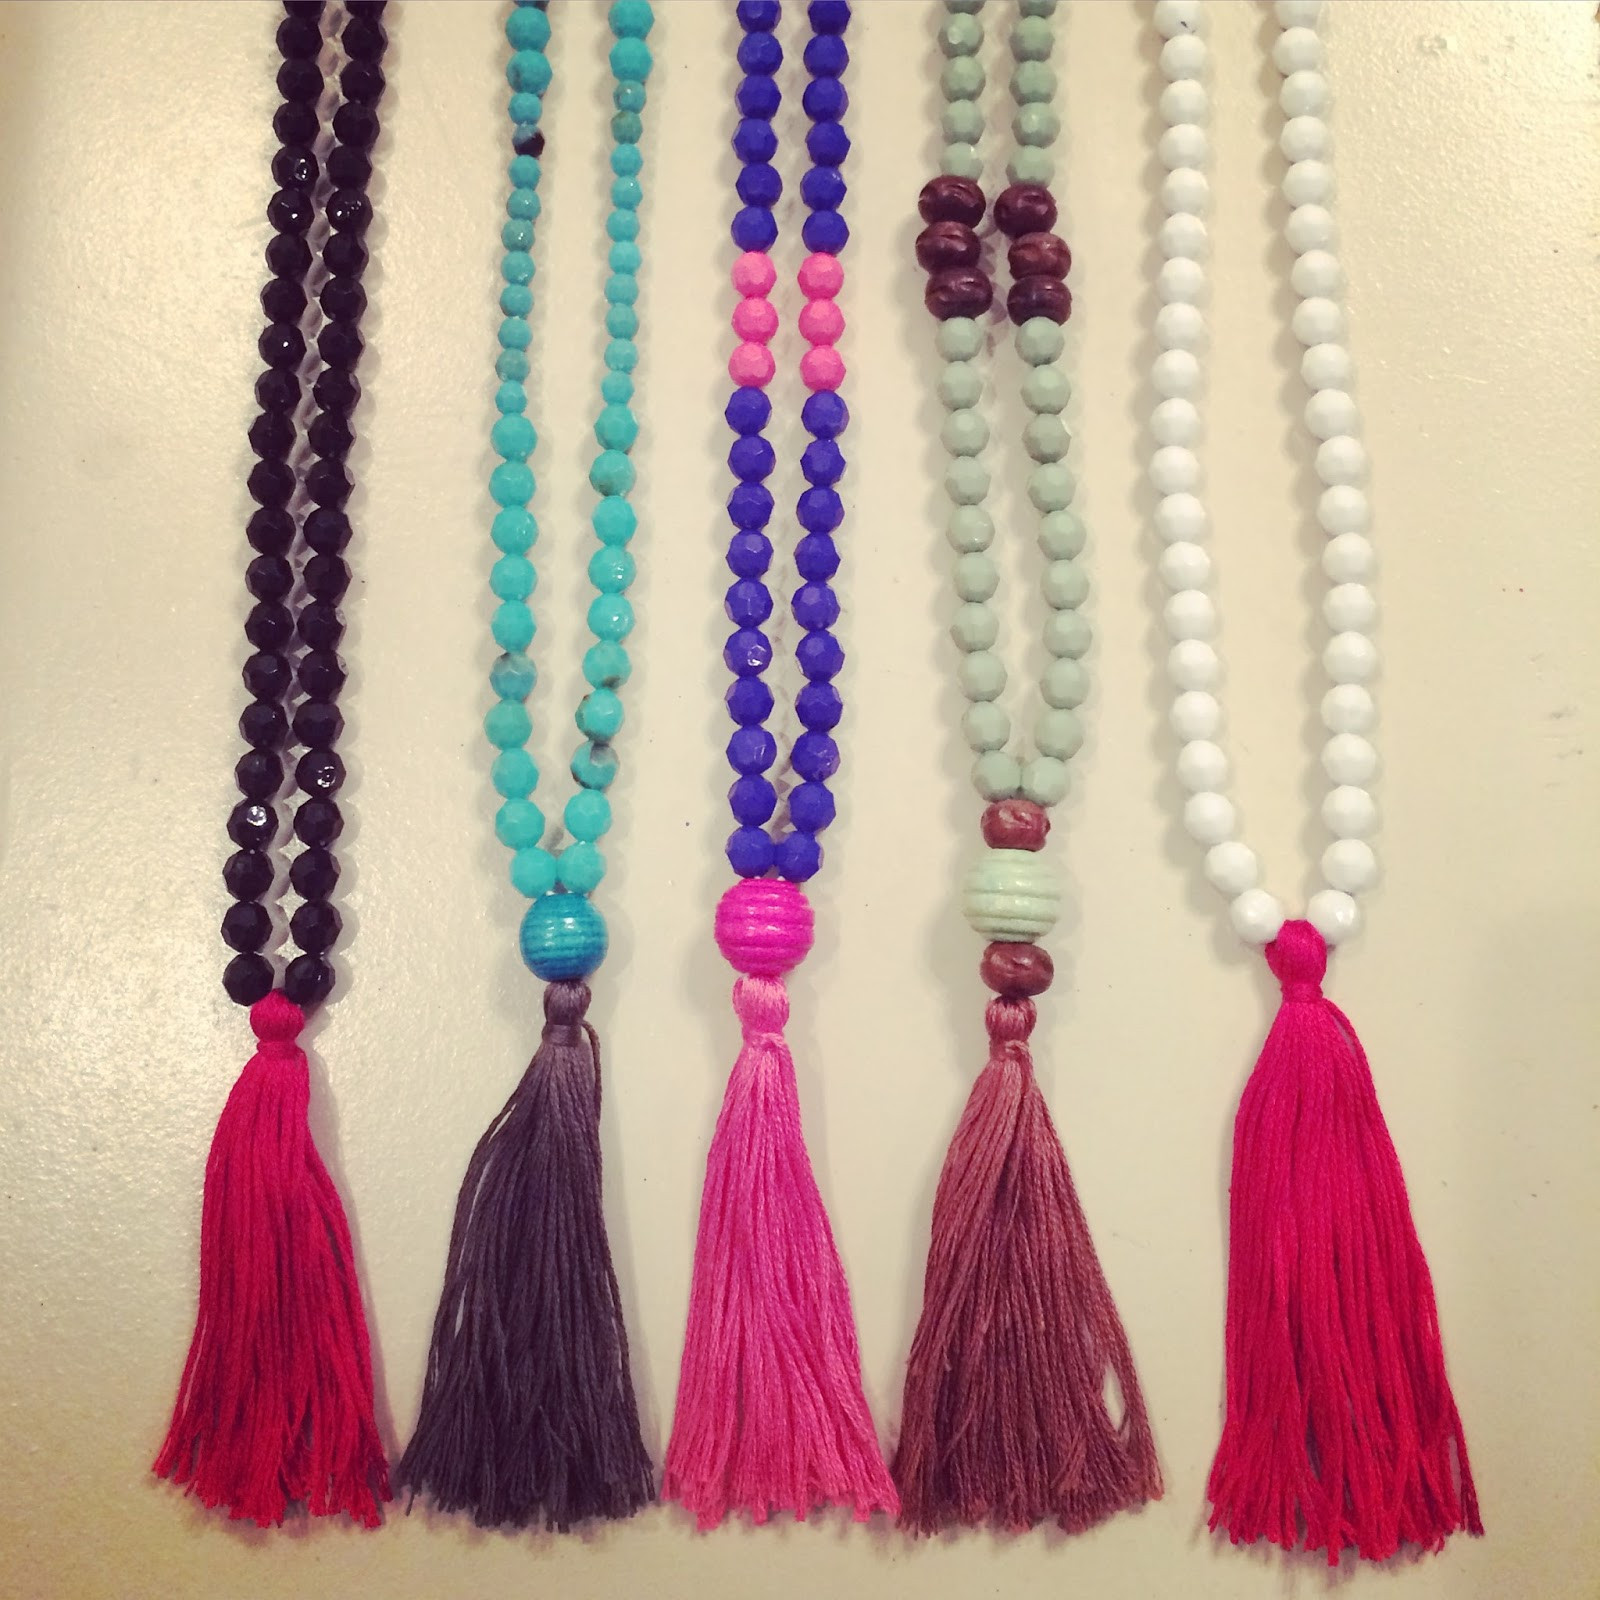 Best ideas about DIY Tassel Necklaces . Save or Pin Magnolia Mamas DIY Tassel Necklaces tutorial Now.